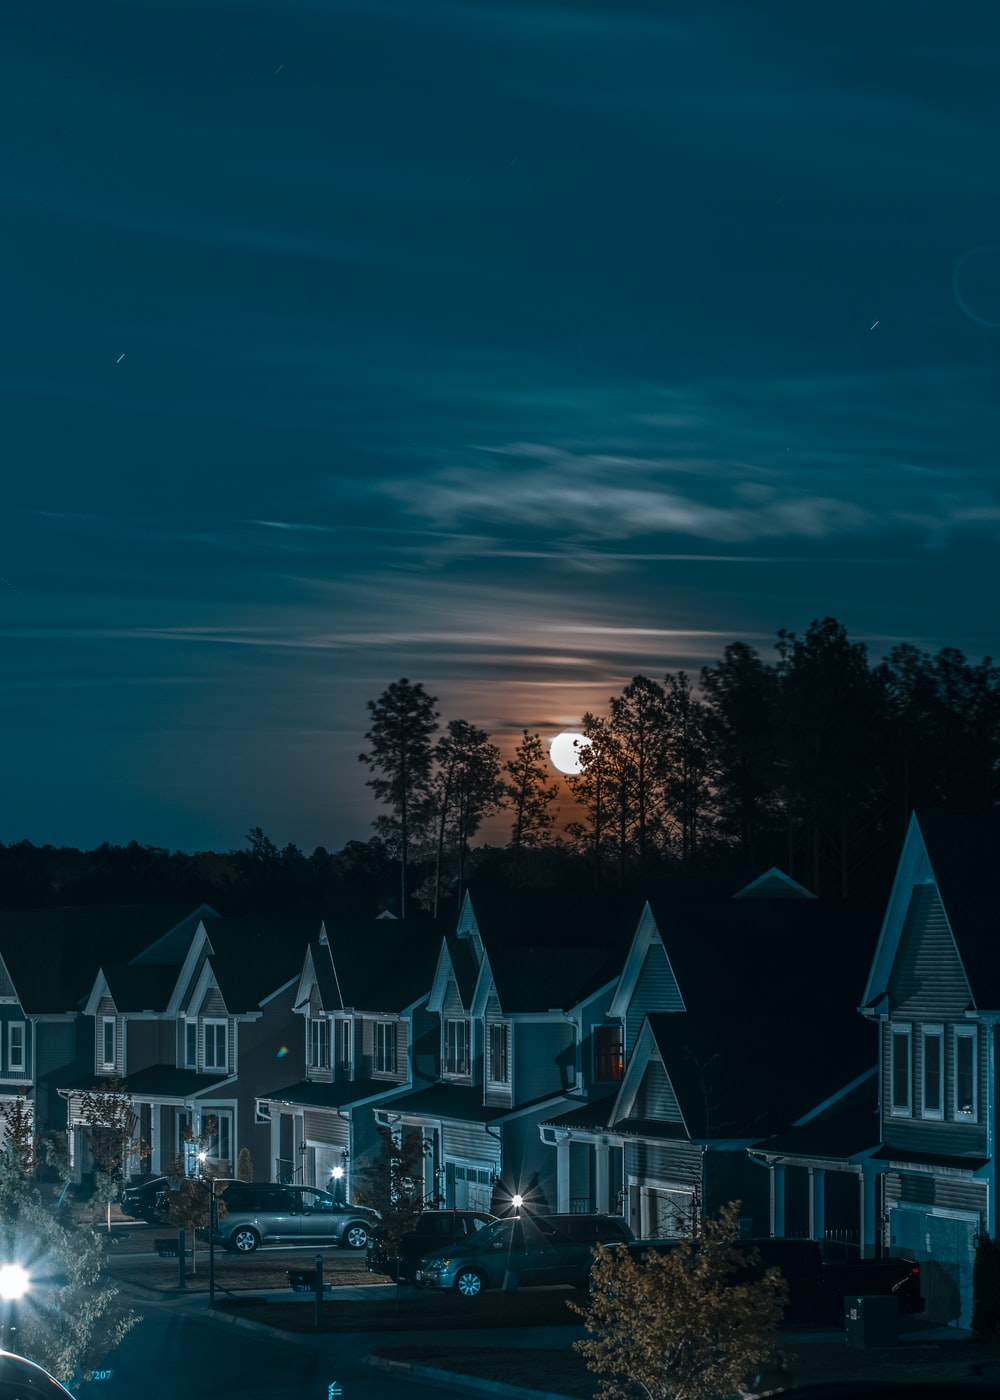 green and white houses during night time